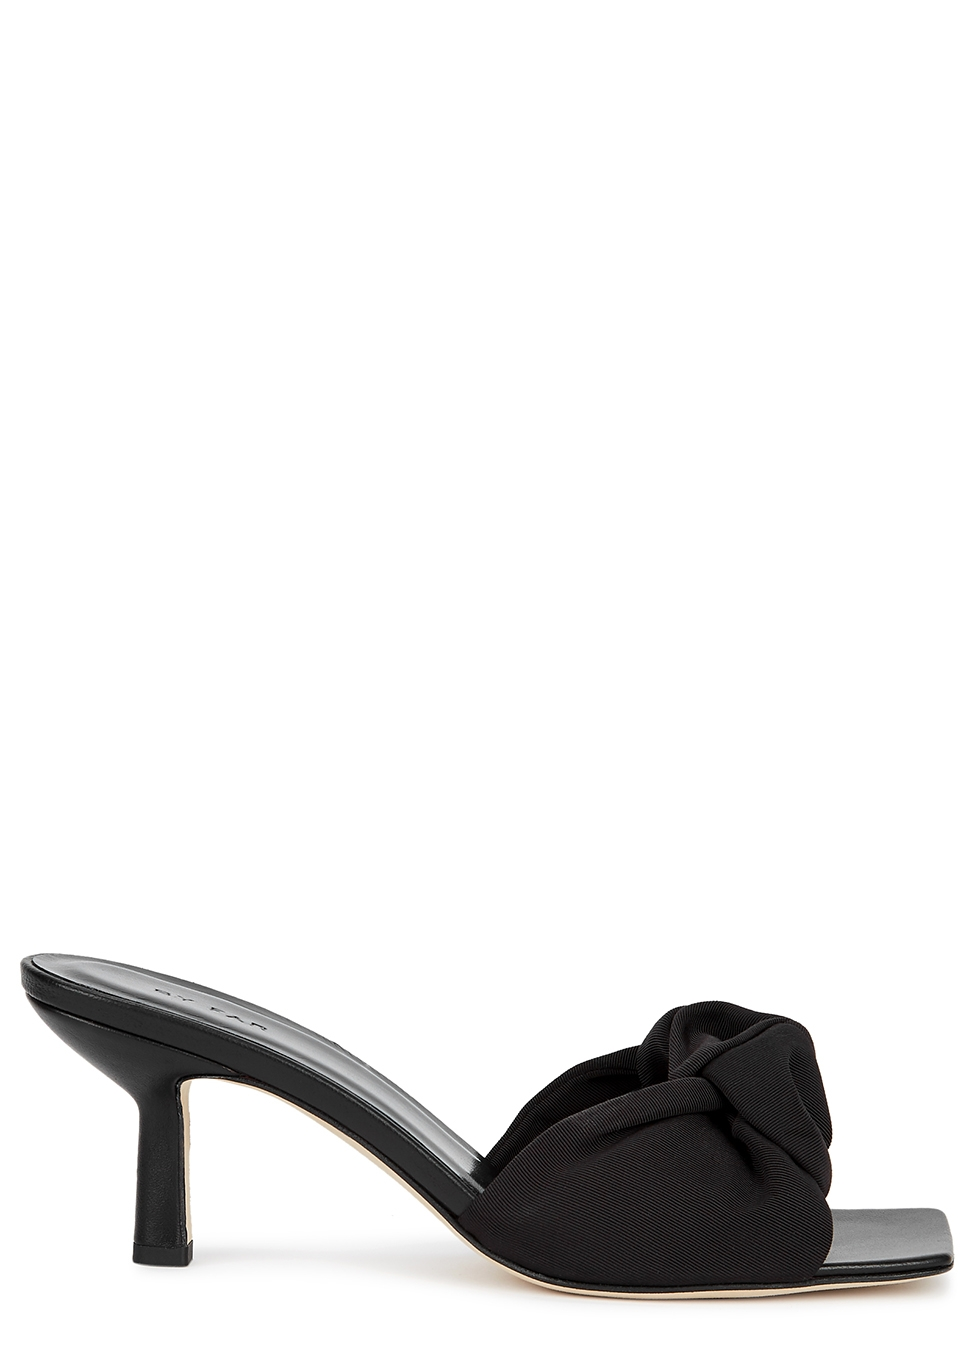 Lana 65 black leather mules